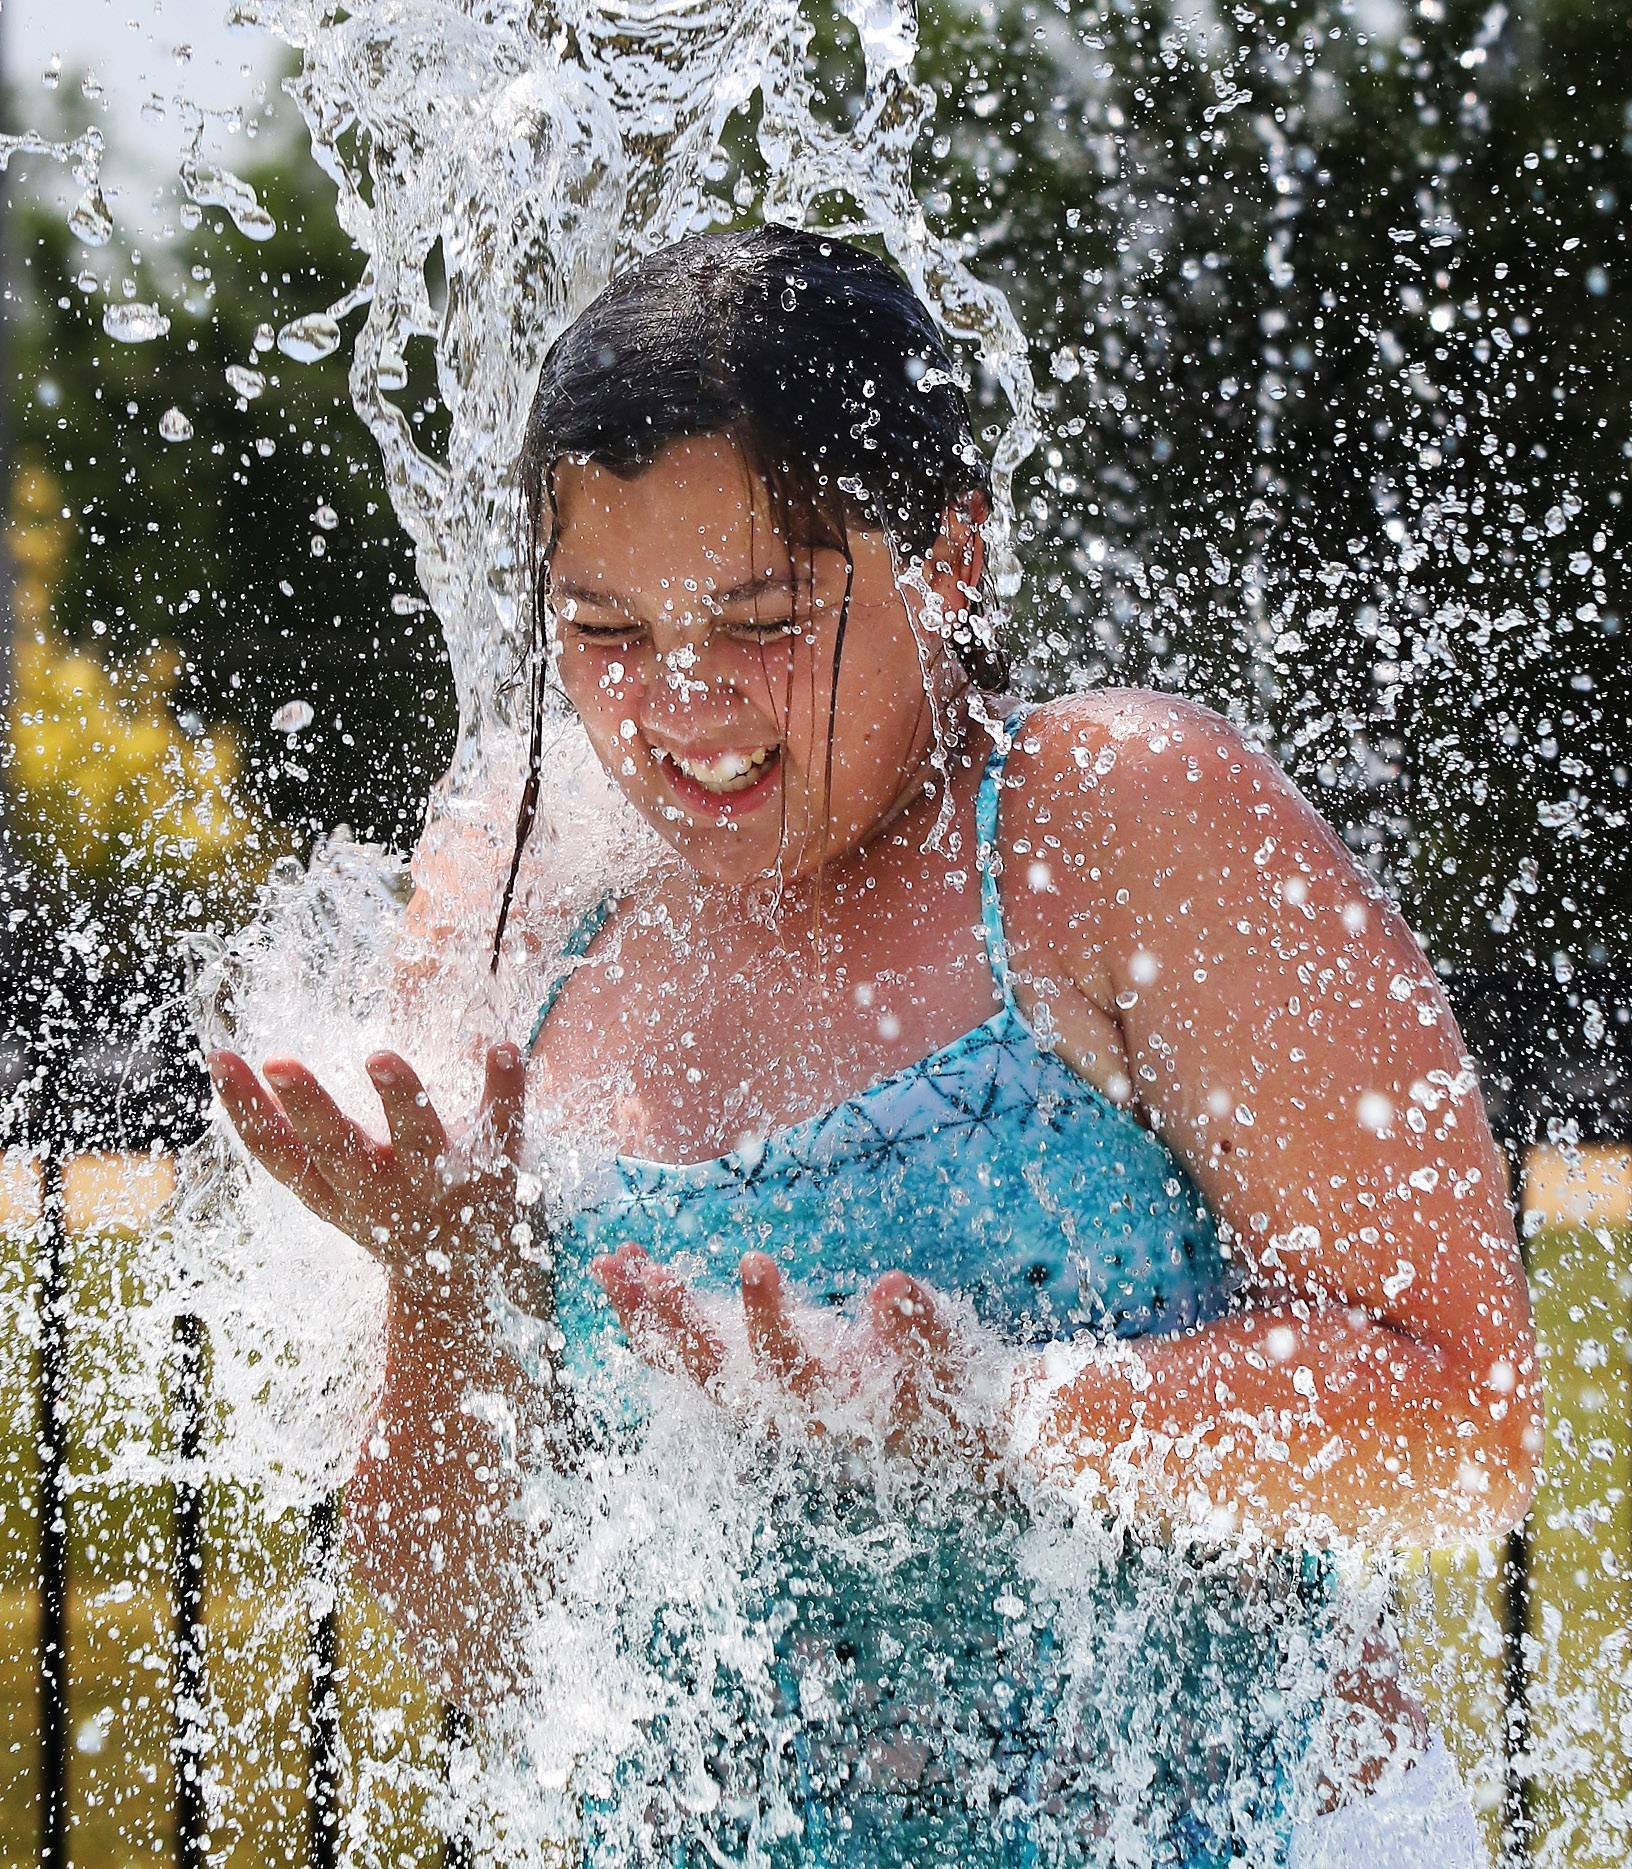 Isabella Adkins, 12, of Grayslake has a bucket of water wash over her as she joins children playing at the Grayslake Park District Spray Park on Tuesday. The cool water made for refreshing play on the hot summer day.